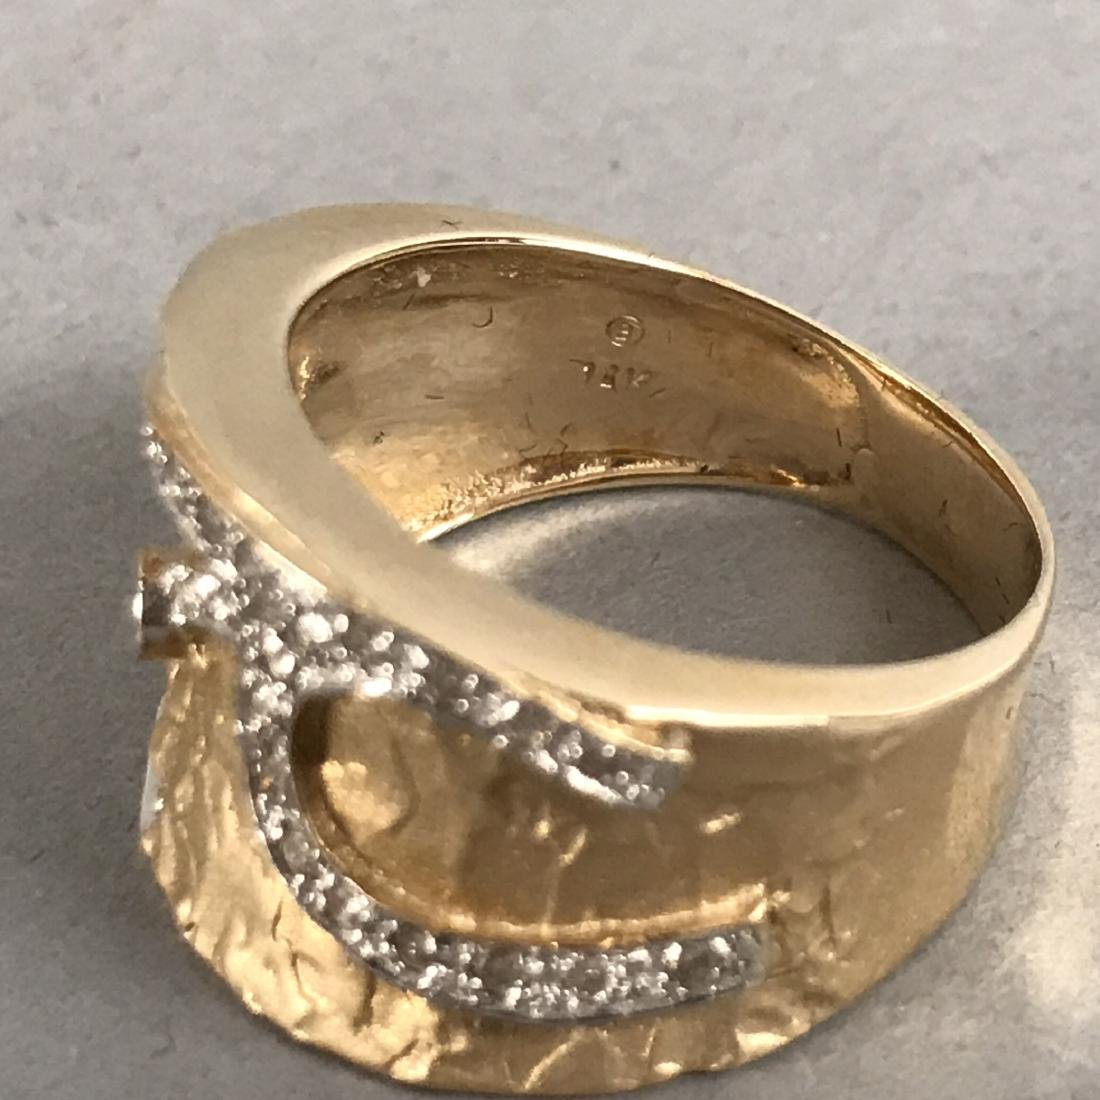 14K Gold Textured Ring with Diamond Design - 5